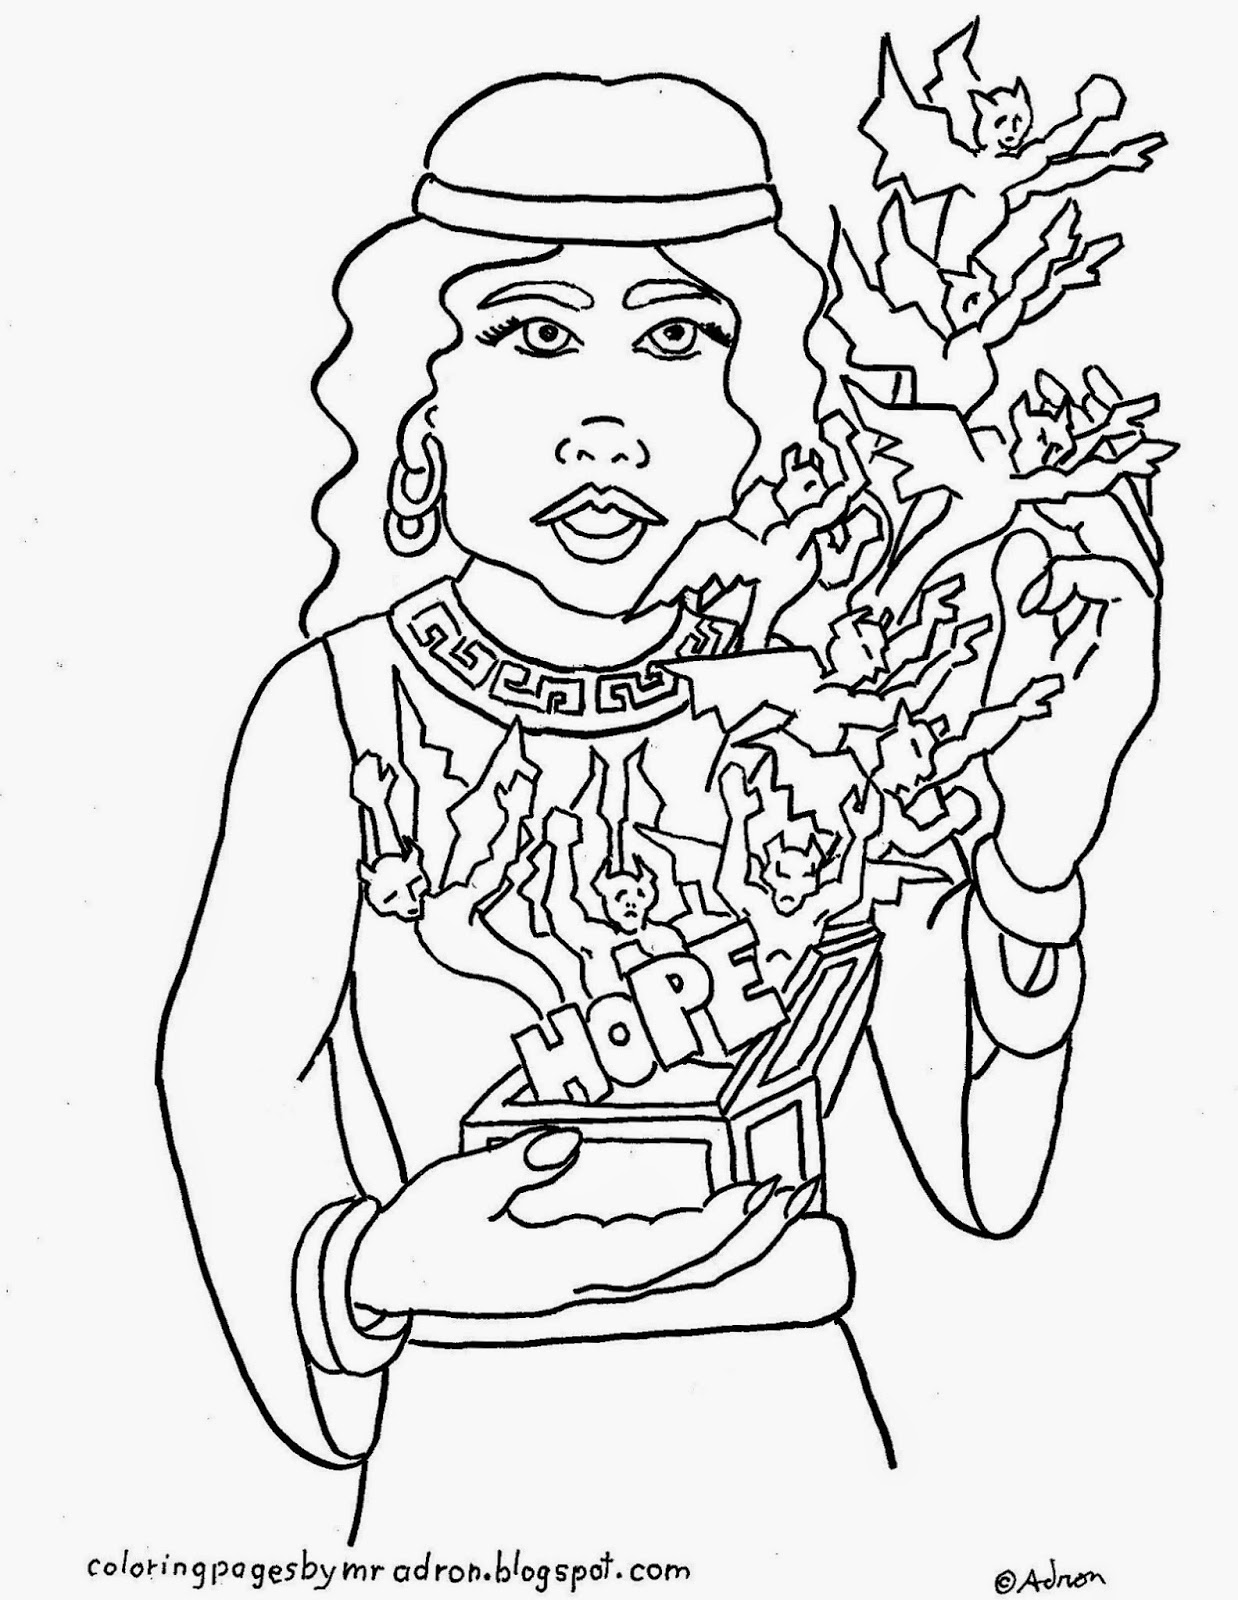 1238x1600 Coloring Pages For Kids By Mr. Adron Greek Myth, Pandora's Box